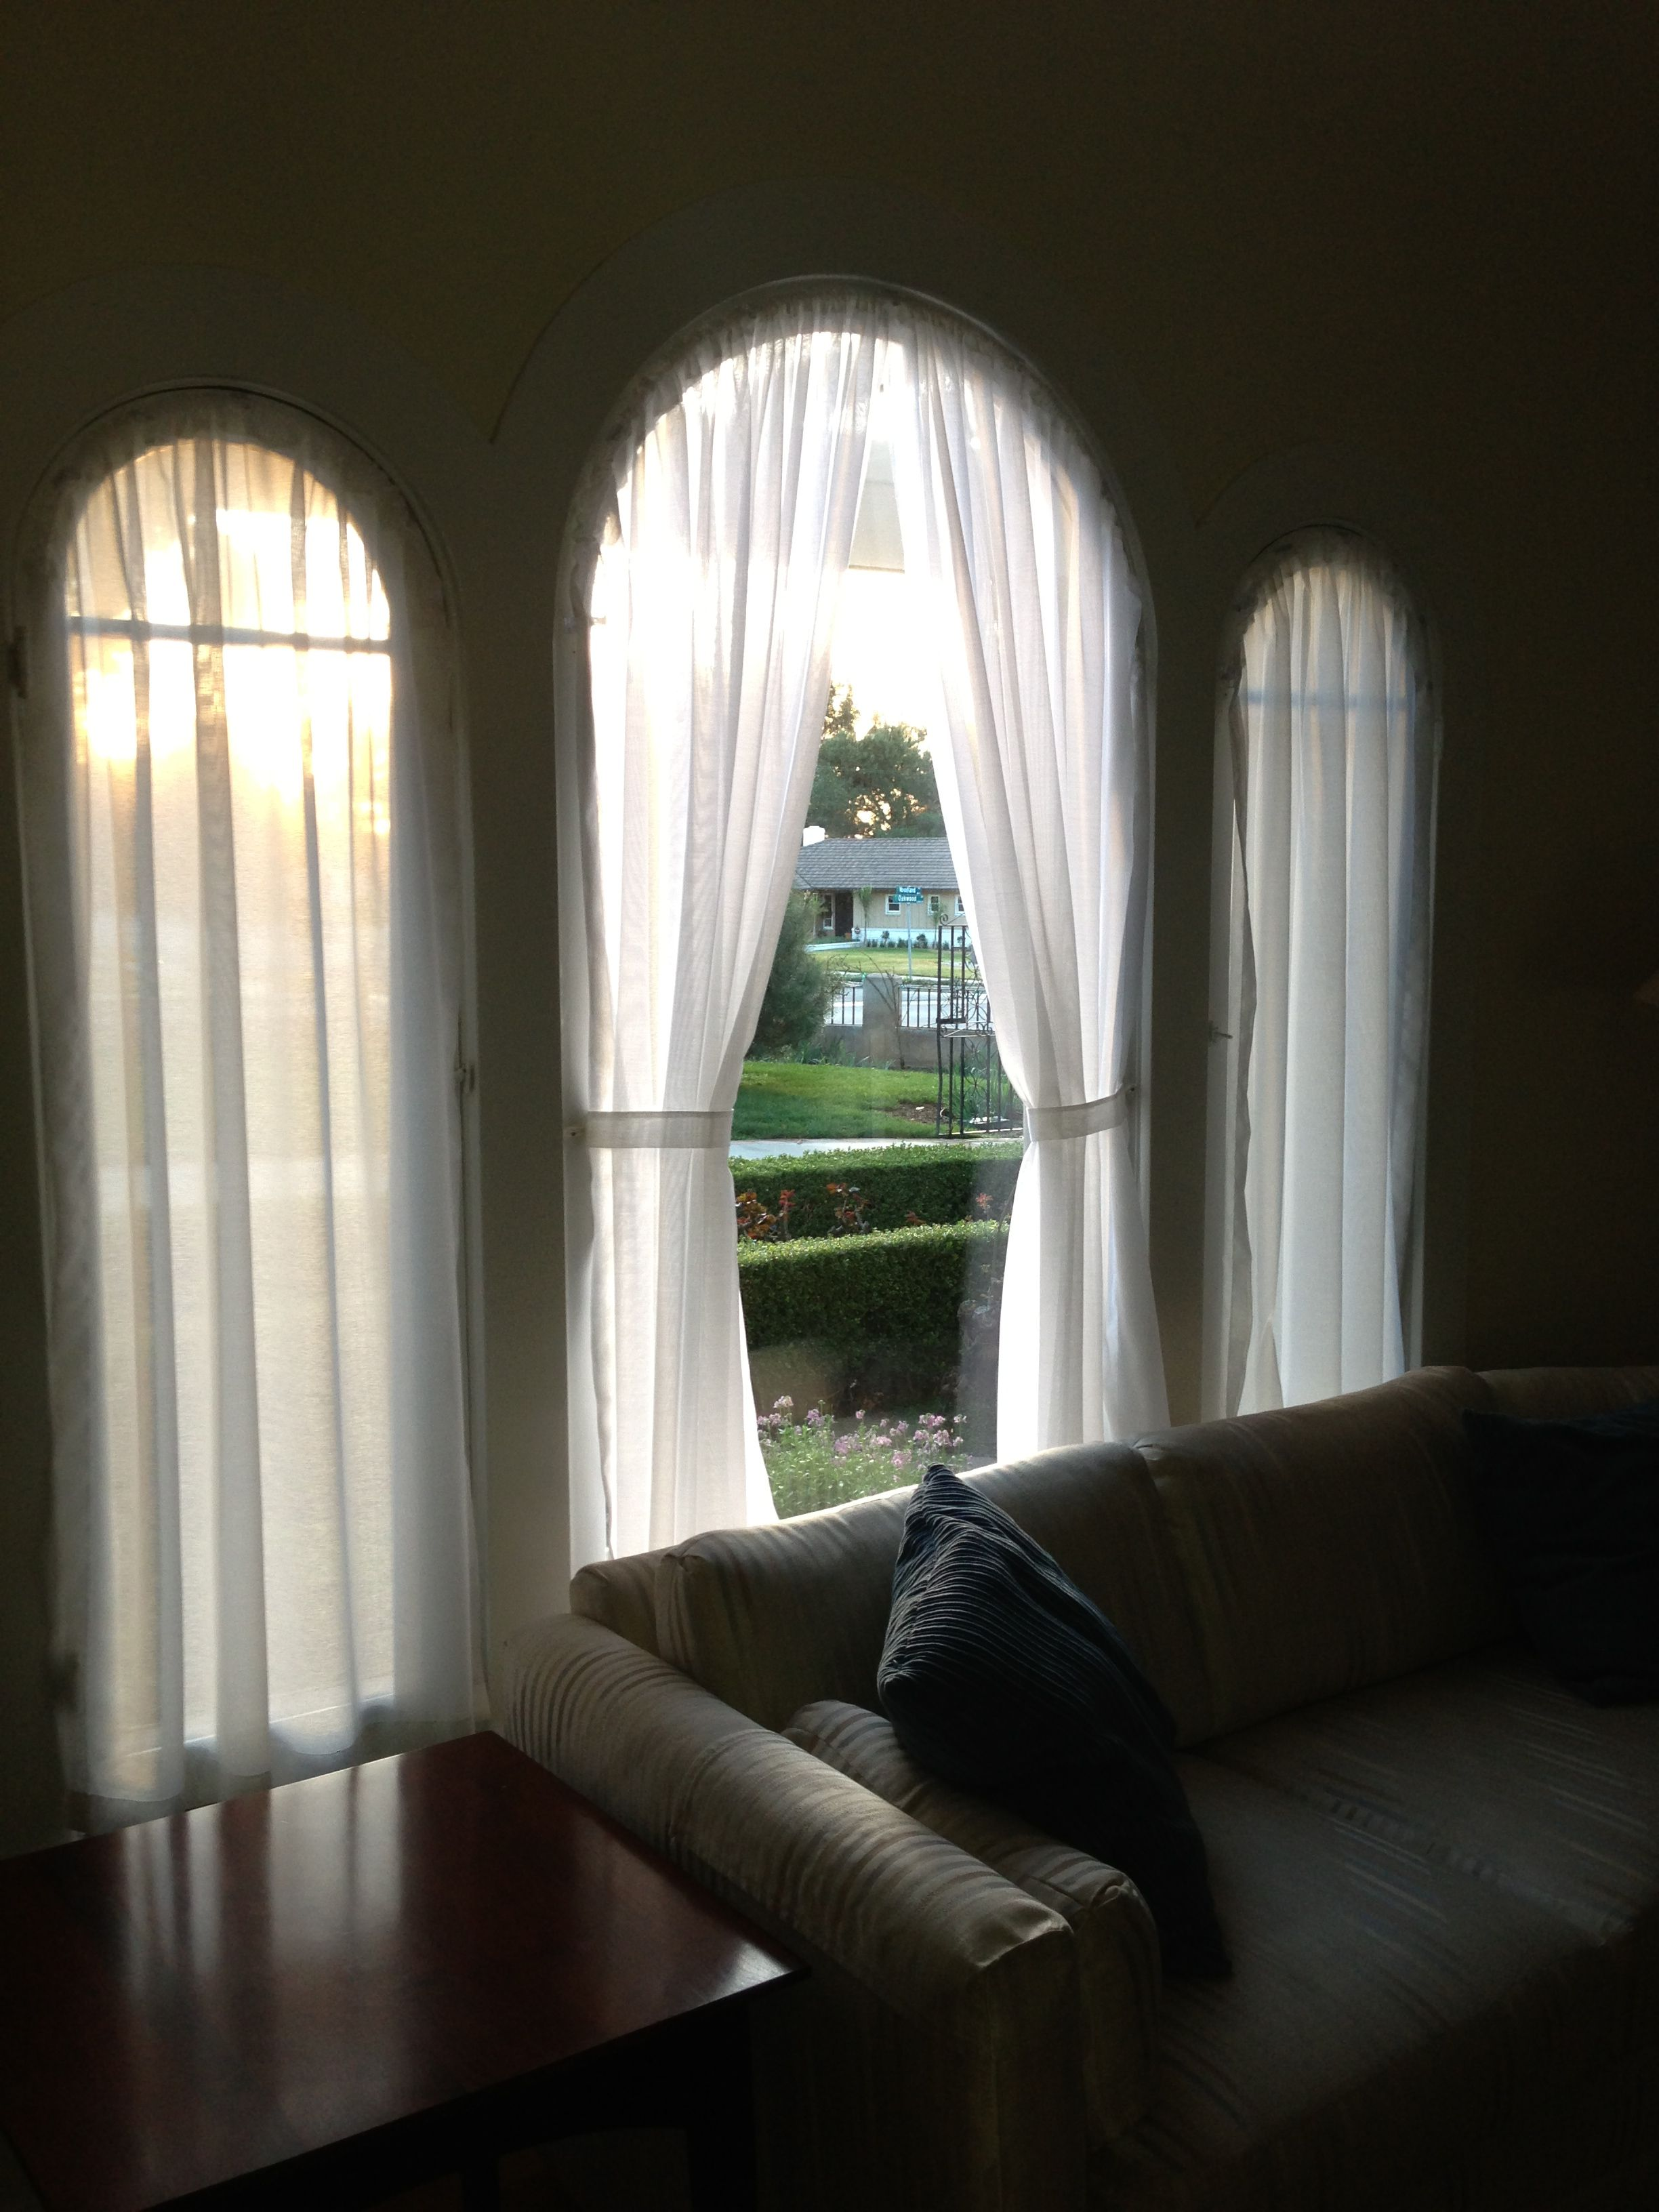 Curtains I Designed Sewed For My Arched Window Kirsch Rods For